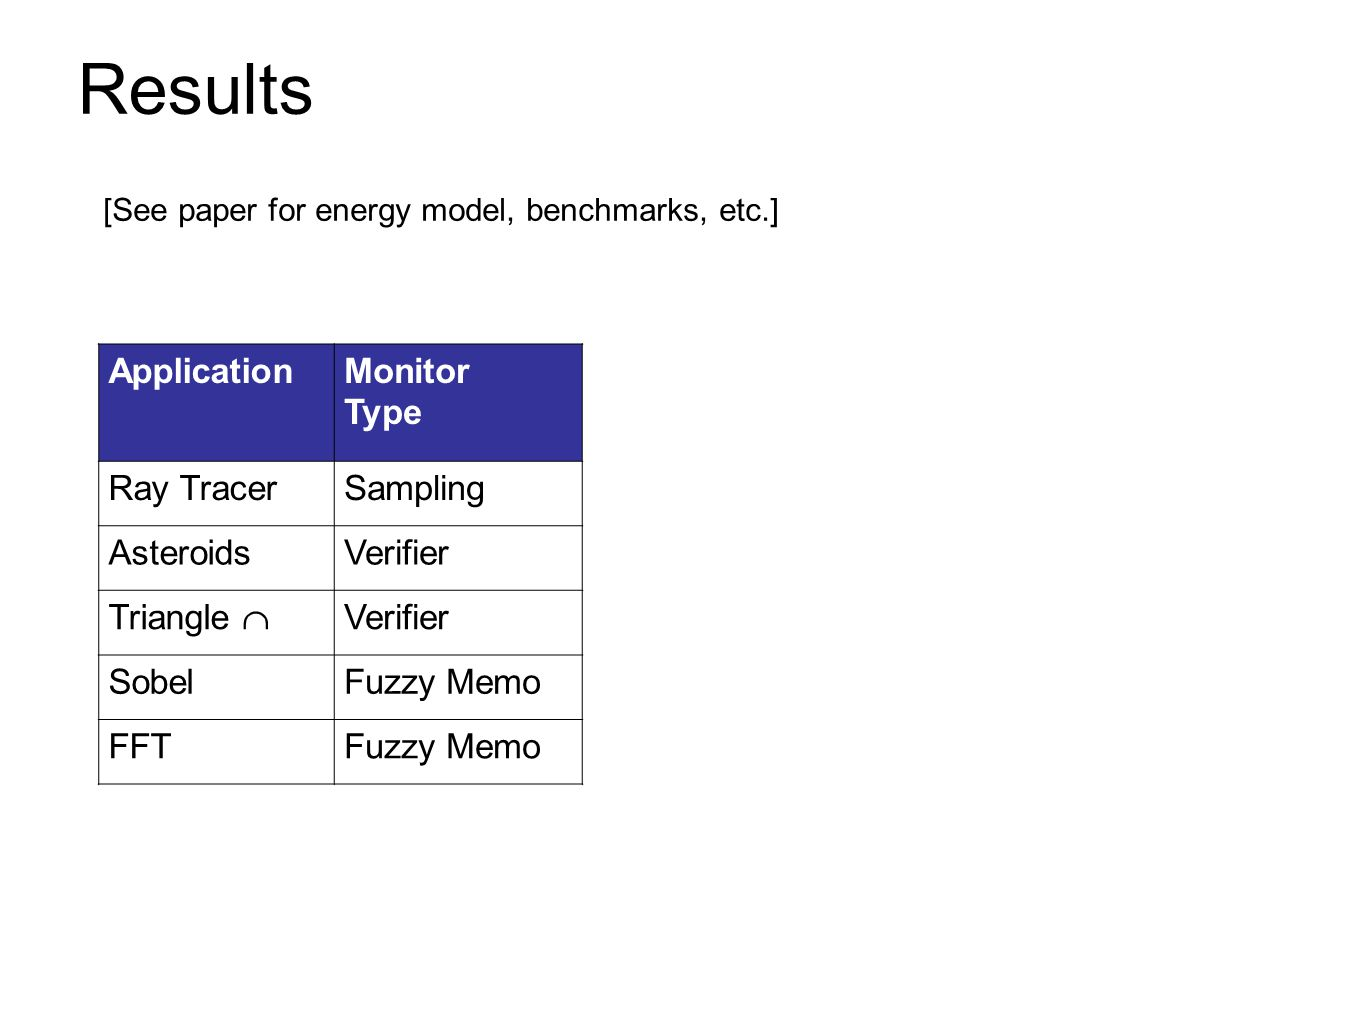 Results [See paper for energy model, benchmarks, etc.] ApplicationMonitor Type Ray TracerSampling AsteroidsVerifier Triangle  Verifier SobelFuzzy Memo FFTFuzzy Memo